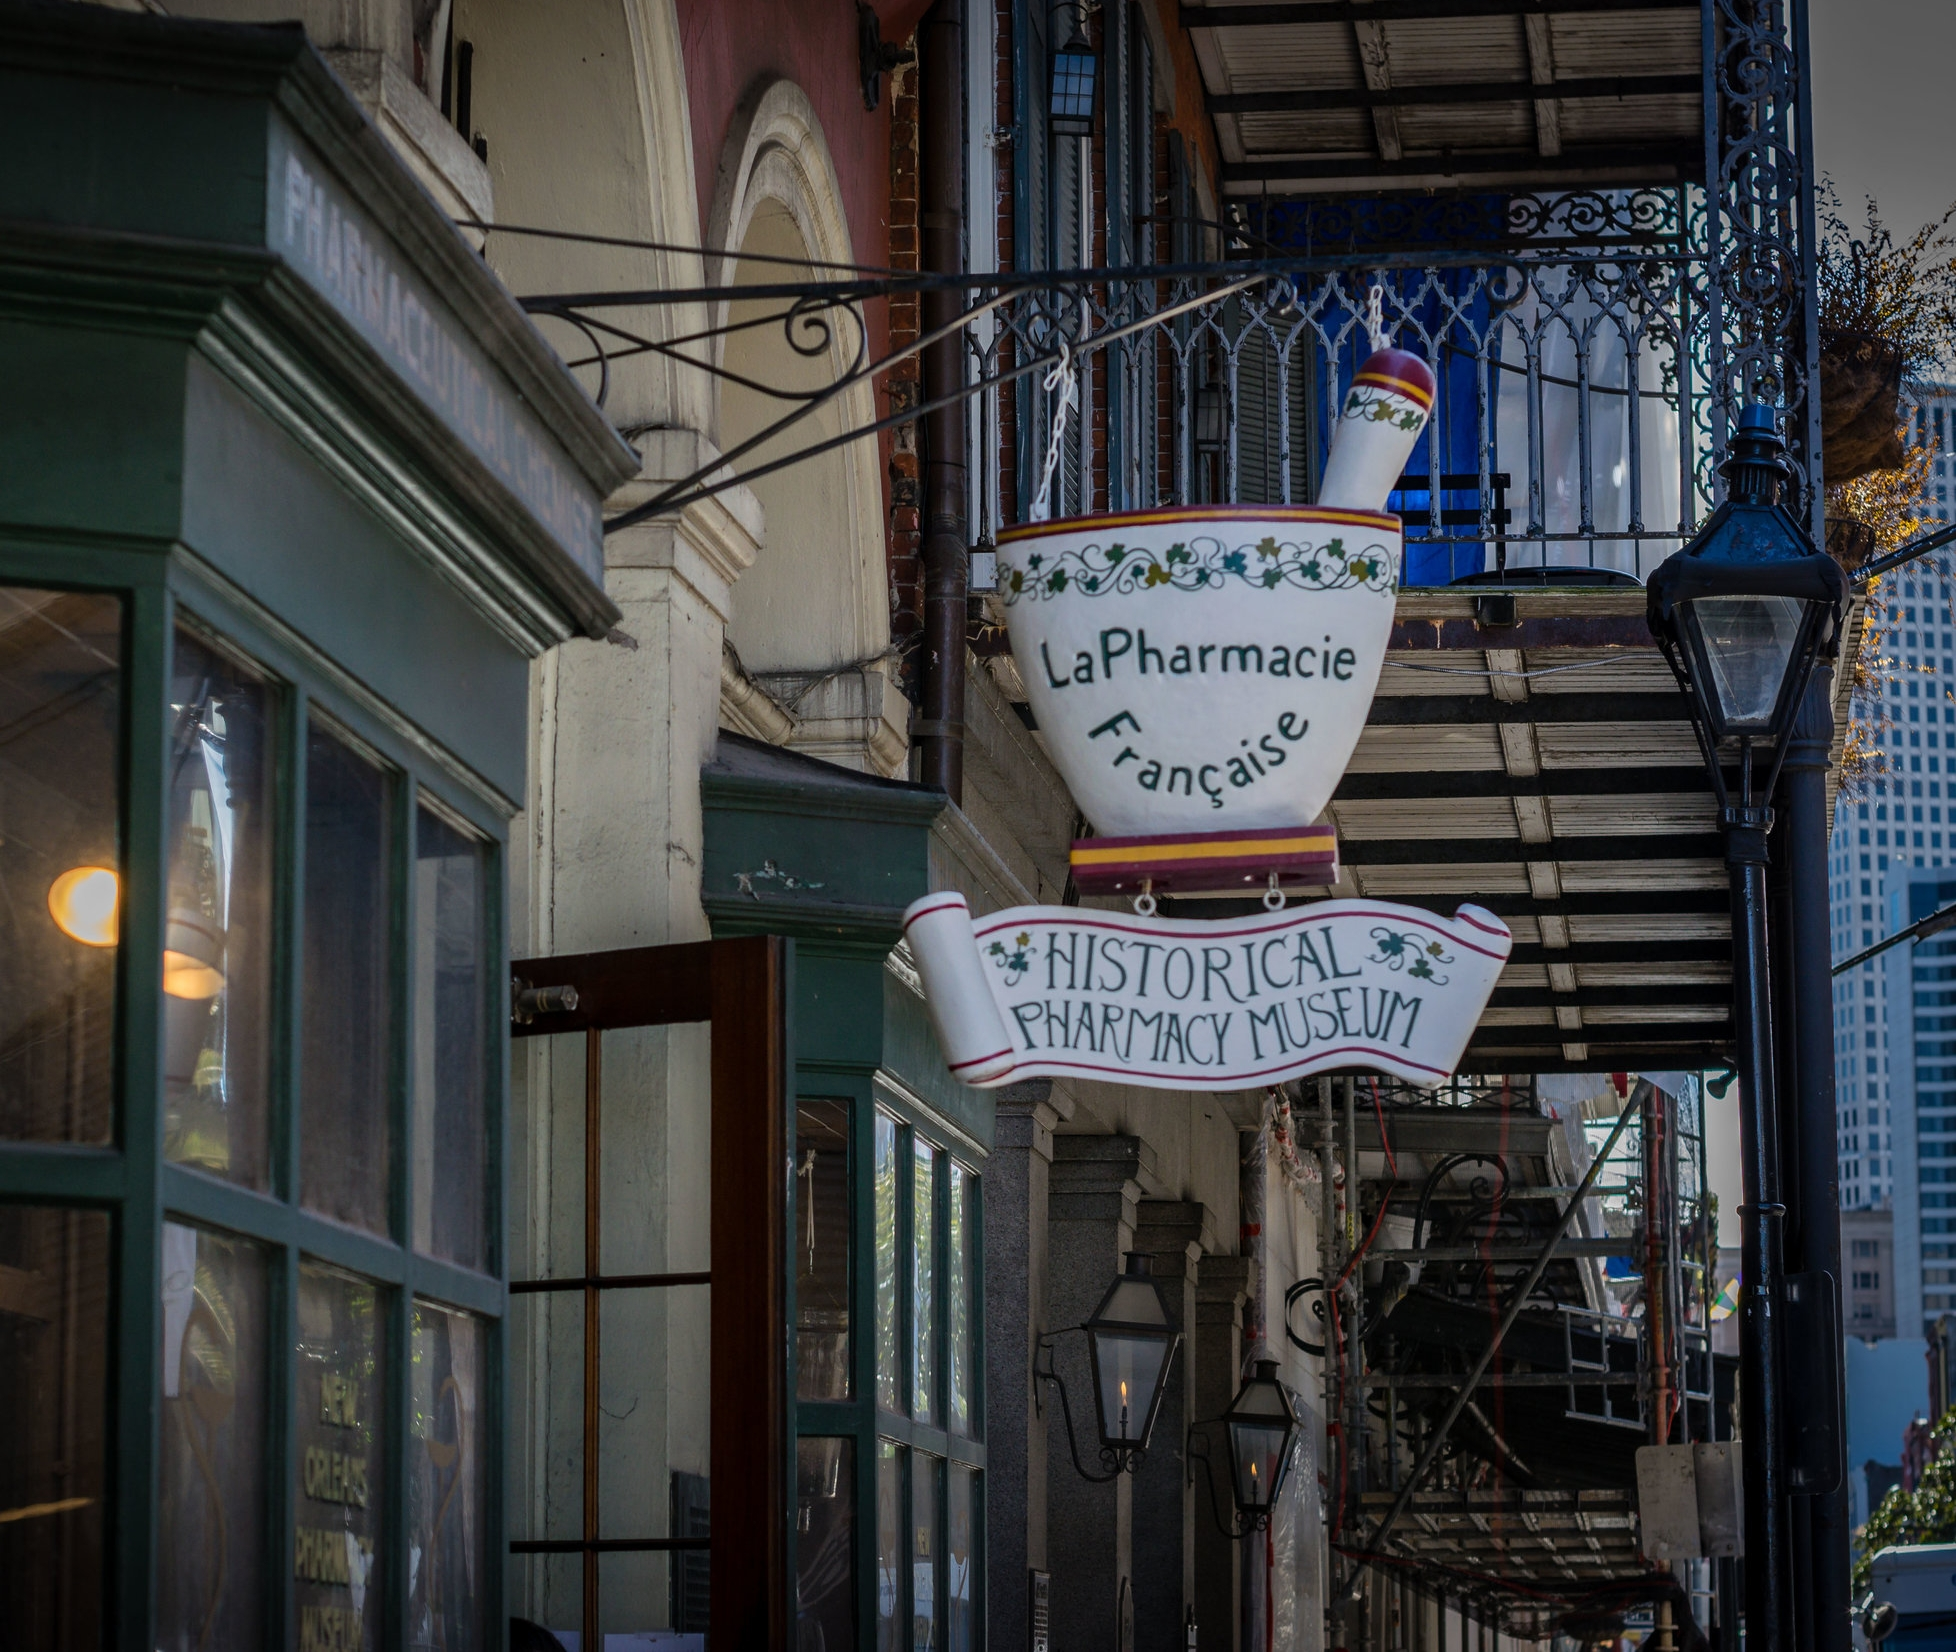 New Orleans Pharmacy Museum - HoursTuesday - Saturday 10am – 4pmGuided Tours1pm Tuesday - FridayClosed on Sunday & Monday